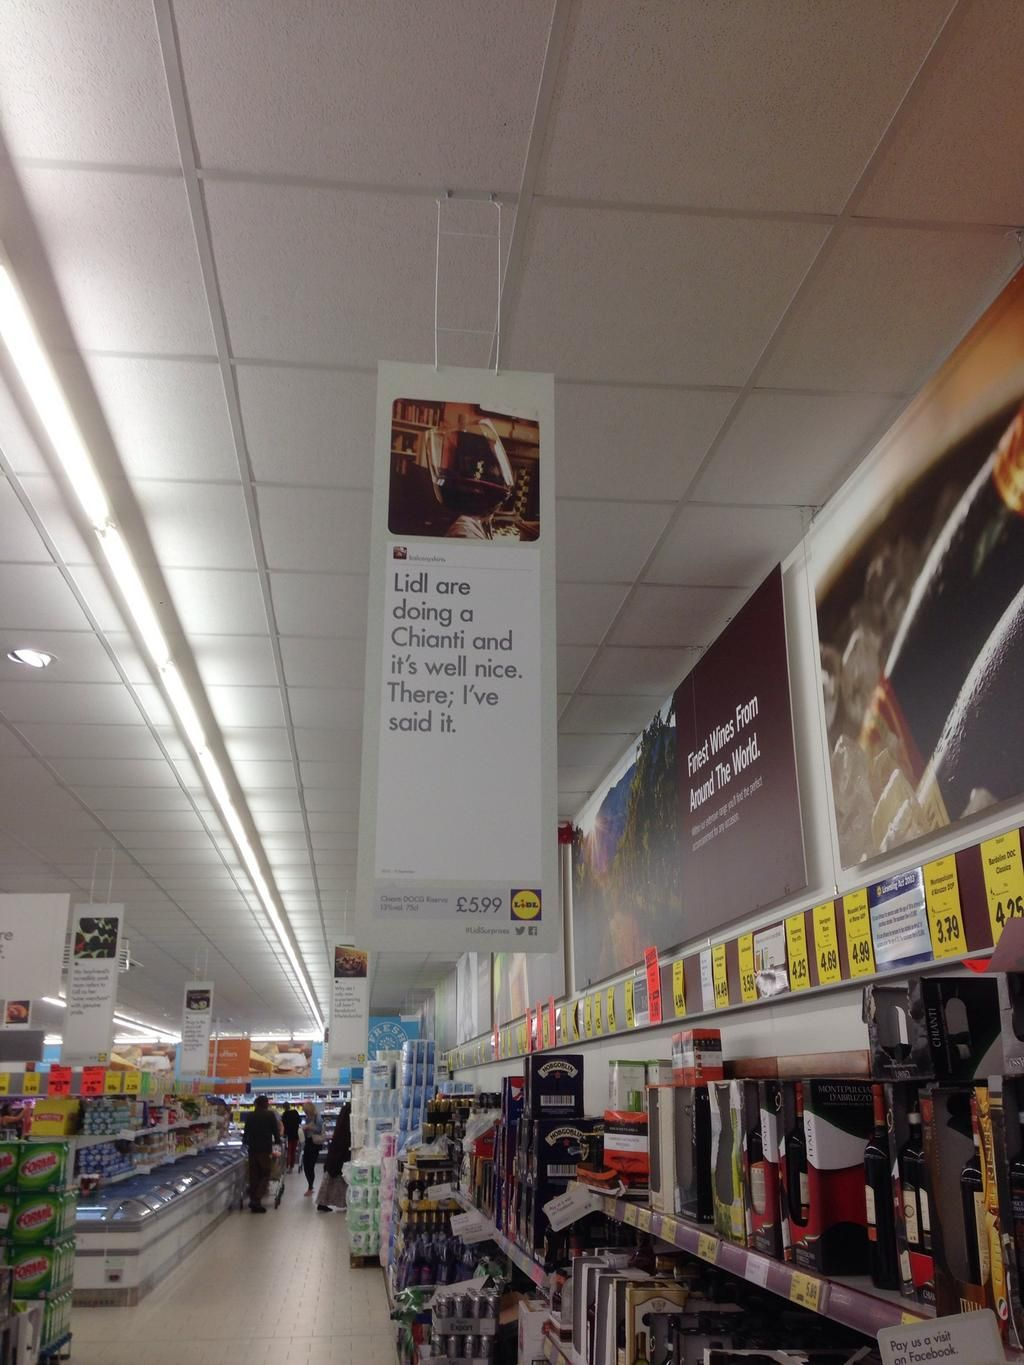 Nice idea from @LidlUK MT @balconyshirts: Lidl have used my Tweet in their stores.